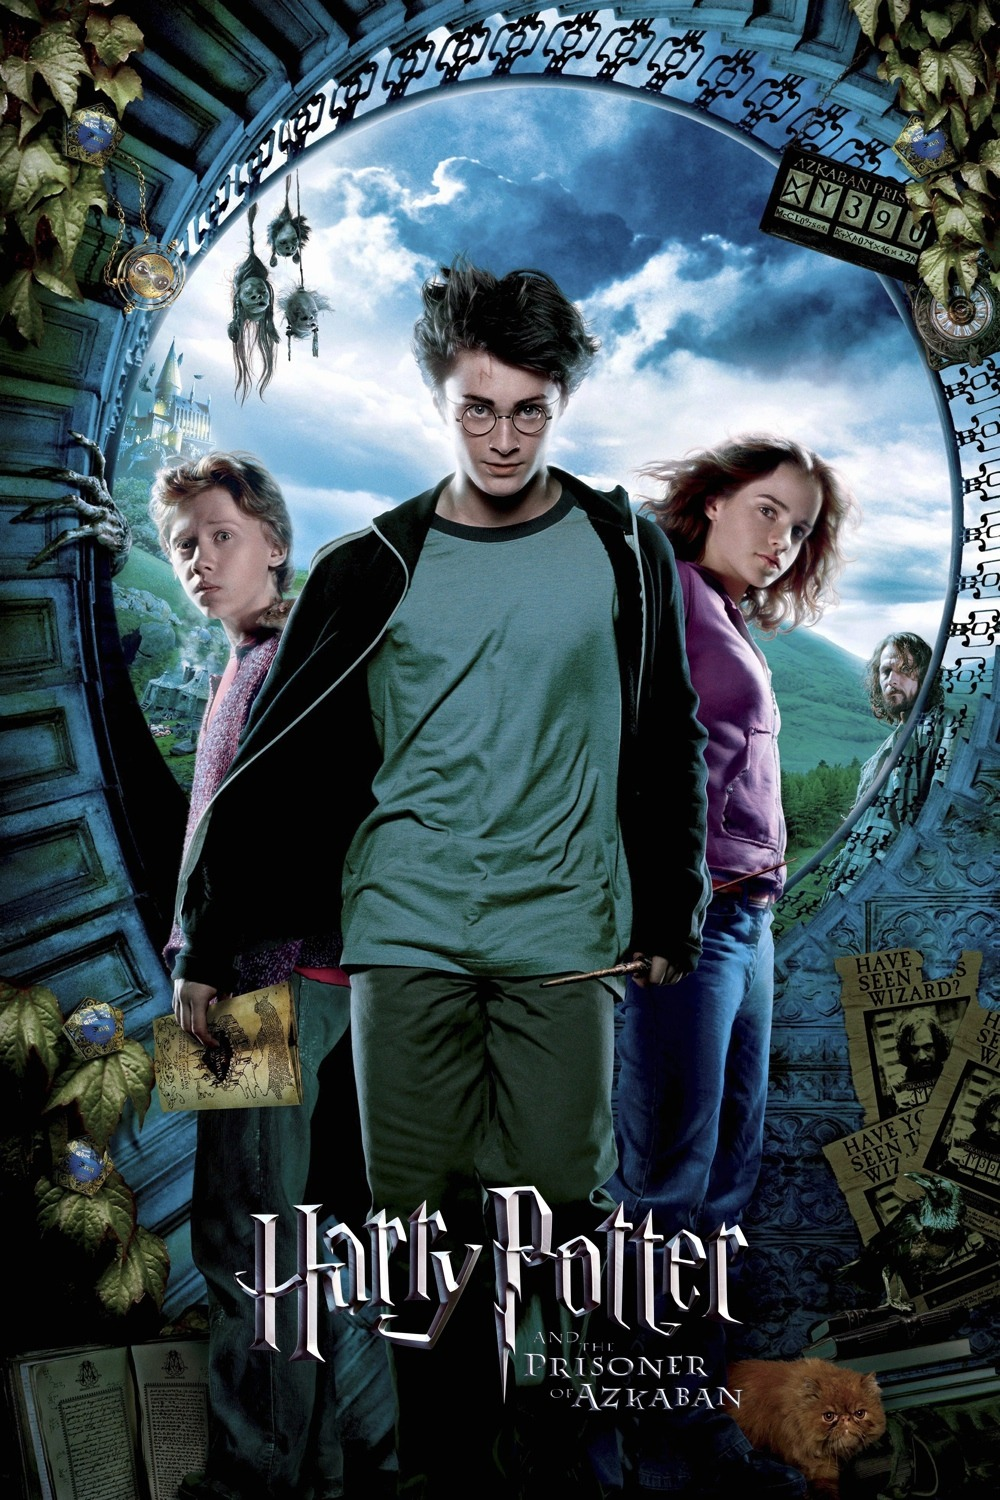 essay harry potter and the prisoner of azkaban Free college essay harry potter and the prisoner of azkaban harry potter and the prisoner of azkaban this novel took place in harrys third year of hagwarts school.